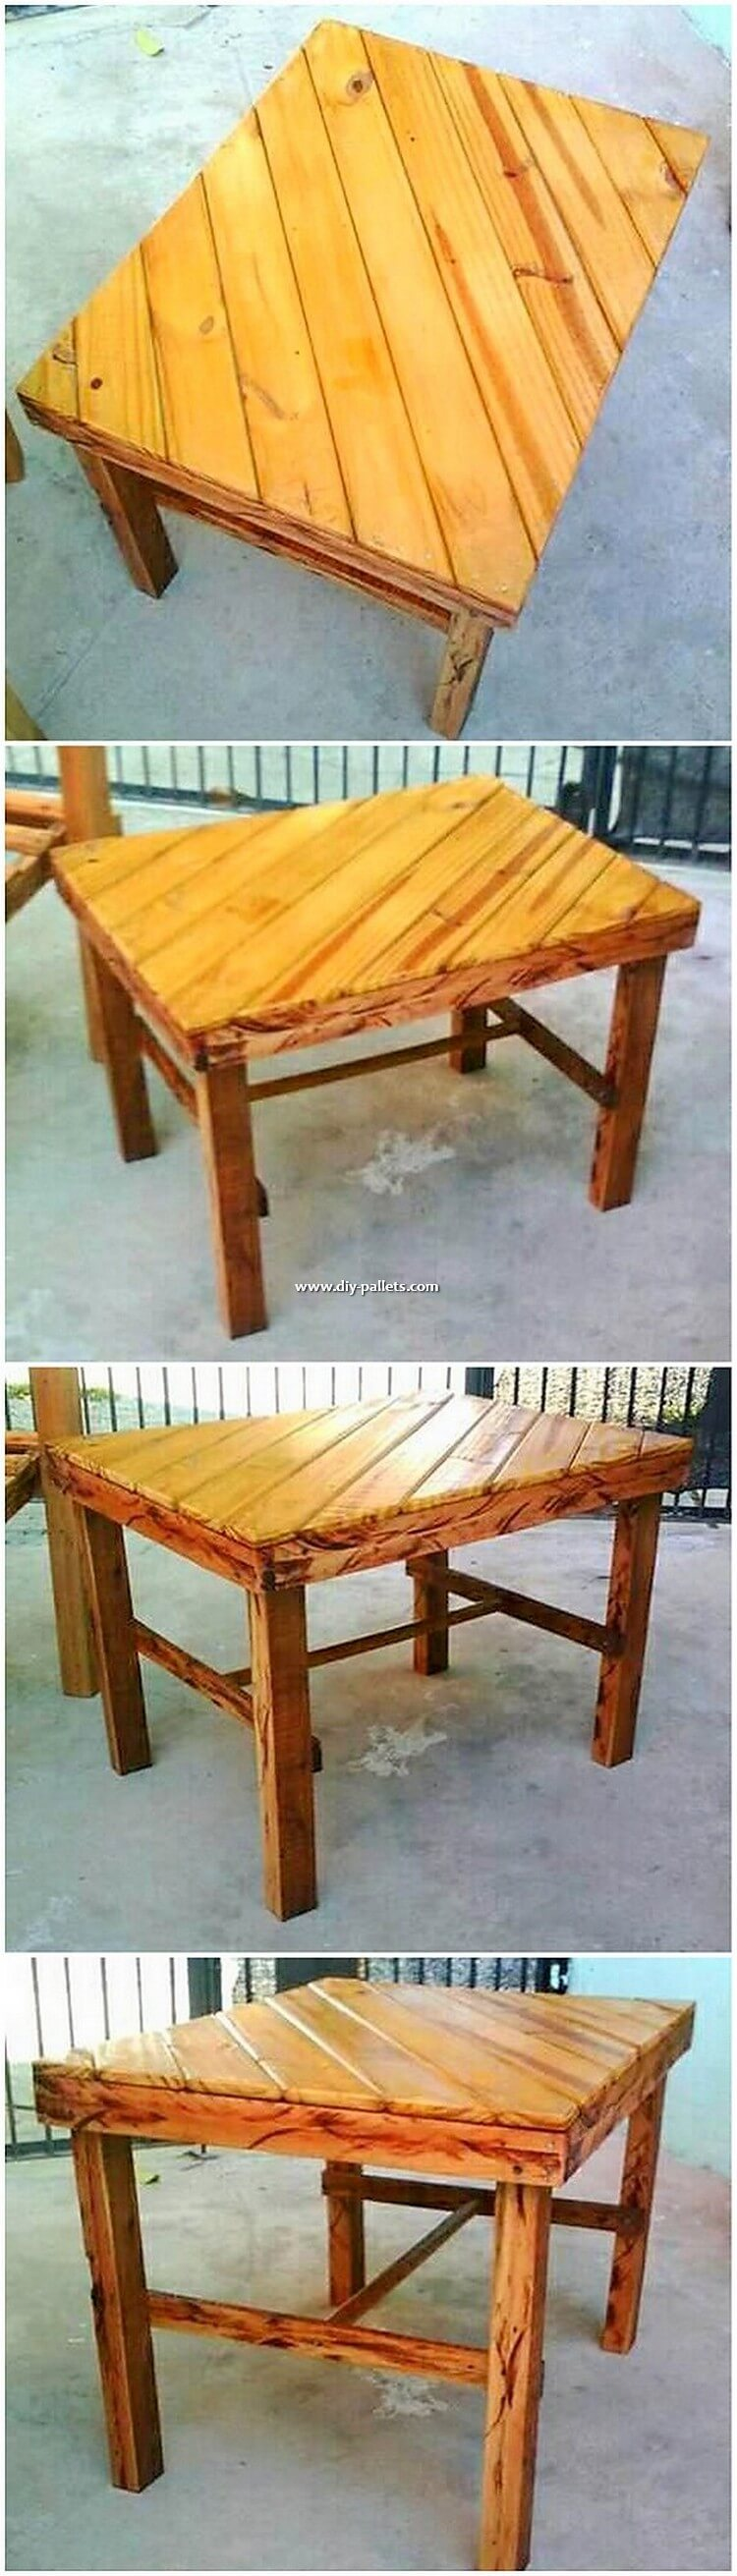 Wooden Pallet Table